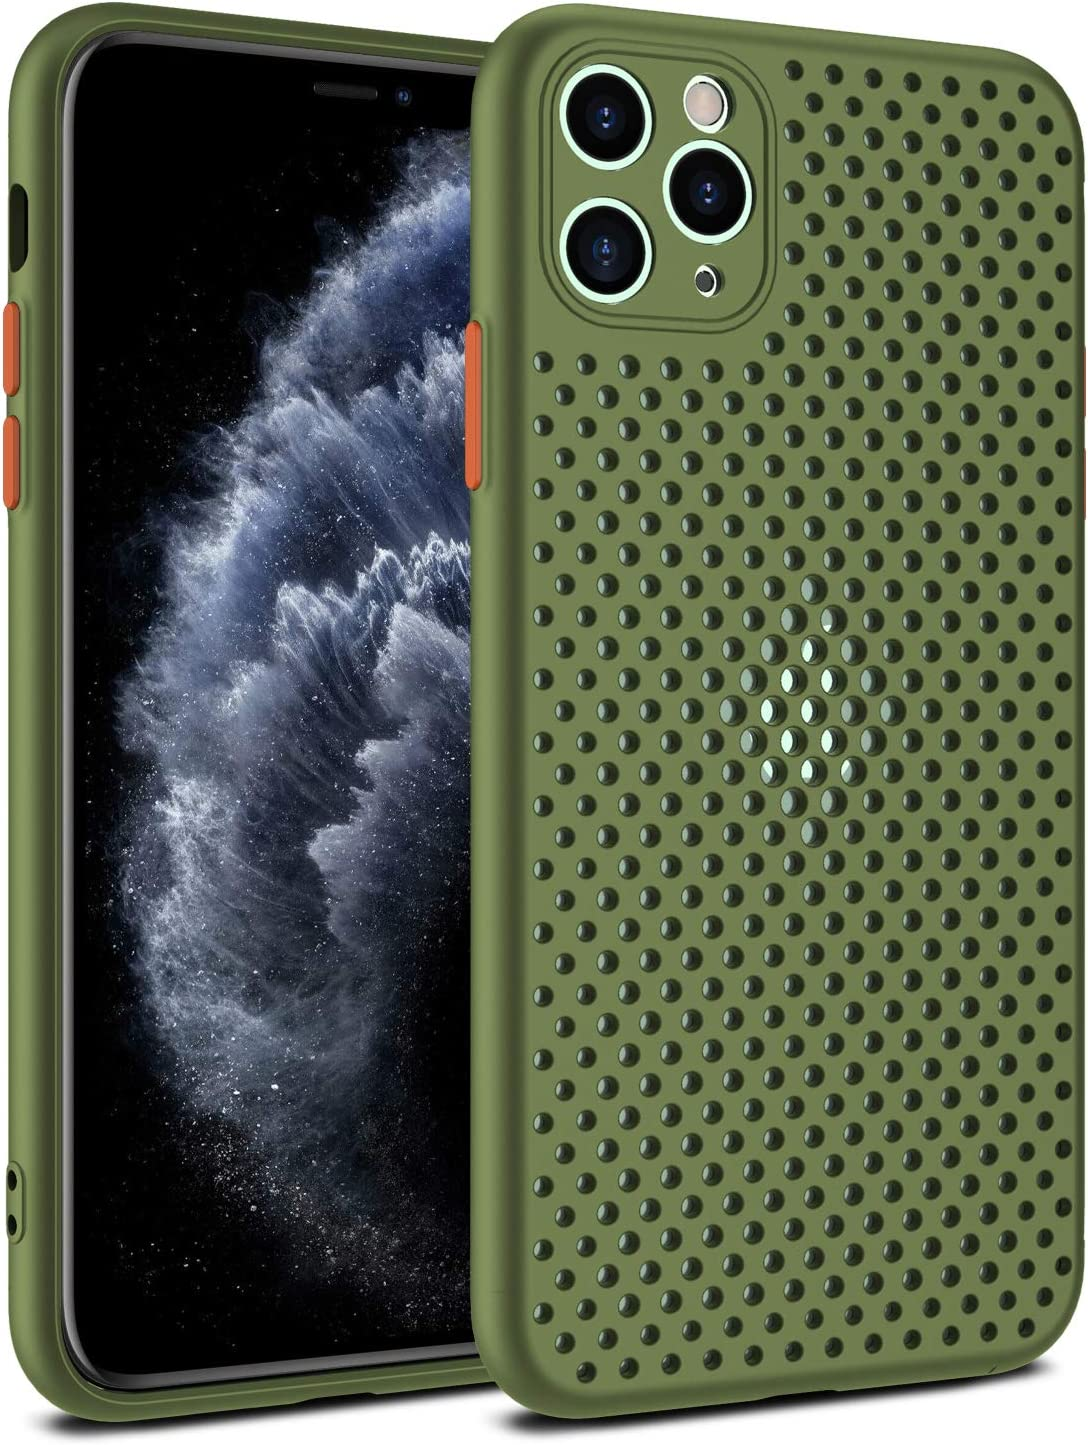 DALINBA Heat Dissipating iPhone XR Heat Dissipation Case, Breathable Mesh iPhone XR Case - Ultra Thin Slim Fit Shockproof Silicone TPU Back Cover with Hollow Cellular Hole,Green